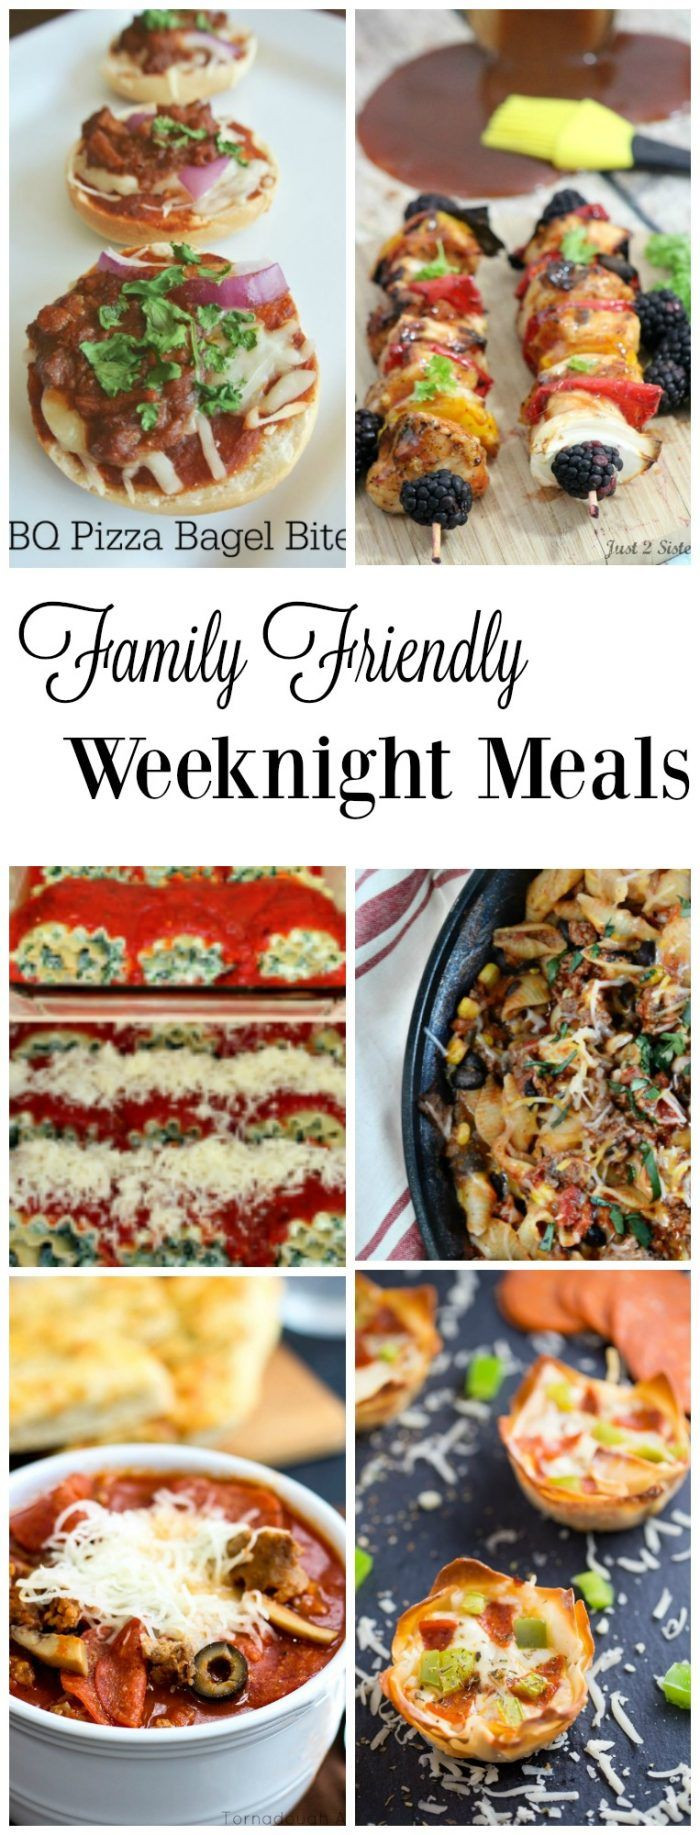 Easy Summer Dinner Recipes For Family  Family Friendly Weeknight Meals Summer Meals